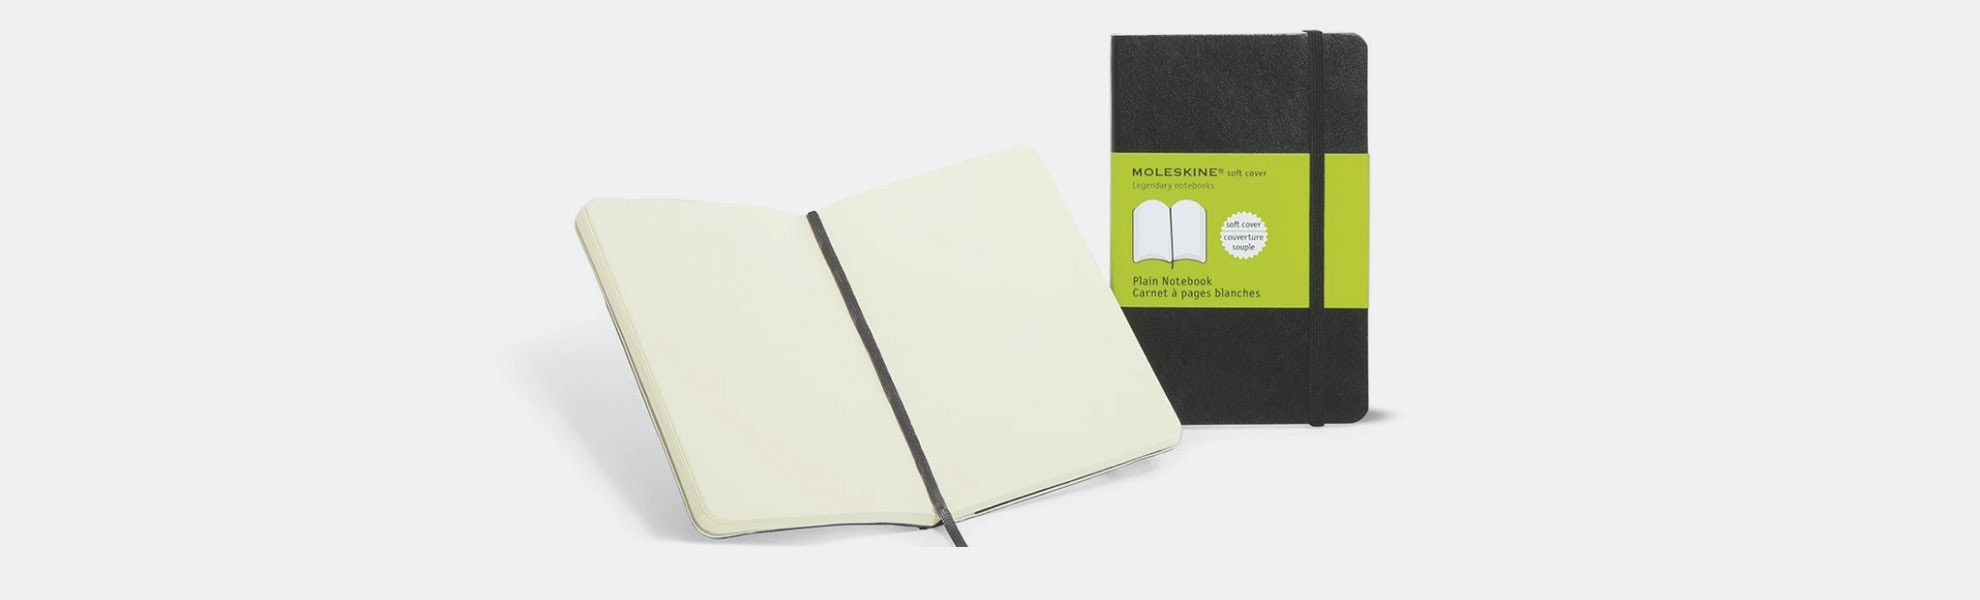 Moleskine Large Notebook (2-Pack) – Flash Sale